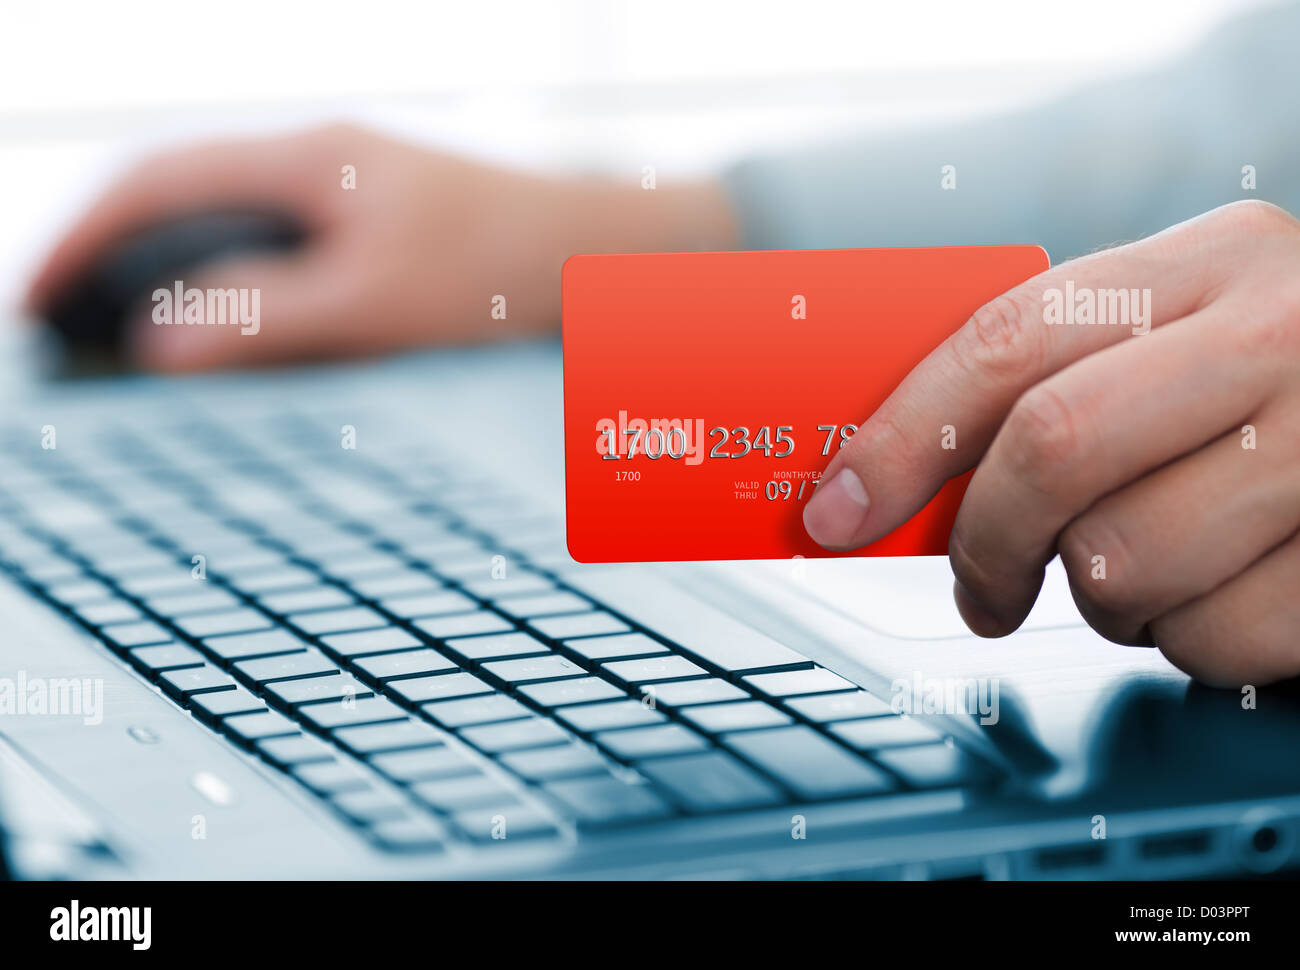 Man holding credit card in hand and entering security code using laptop keyboard - Stock Image